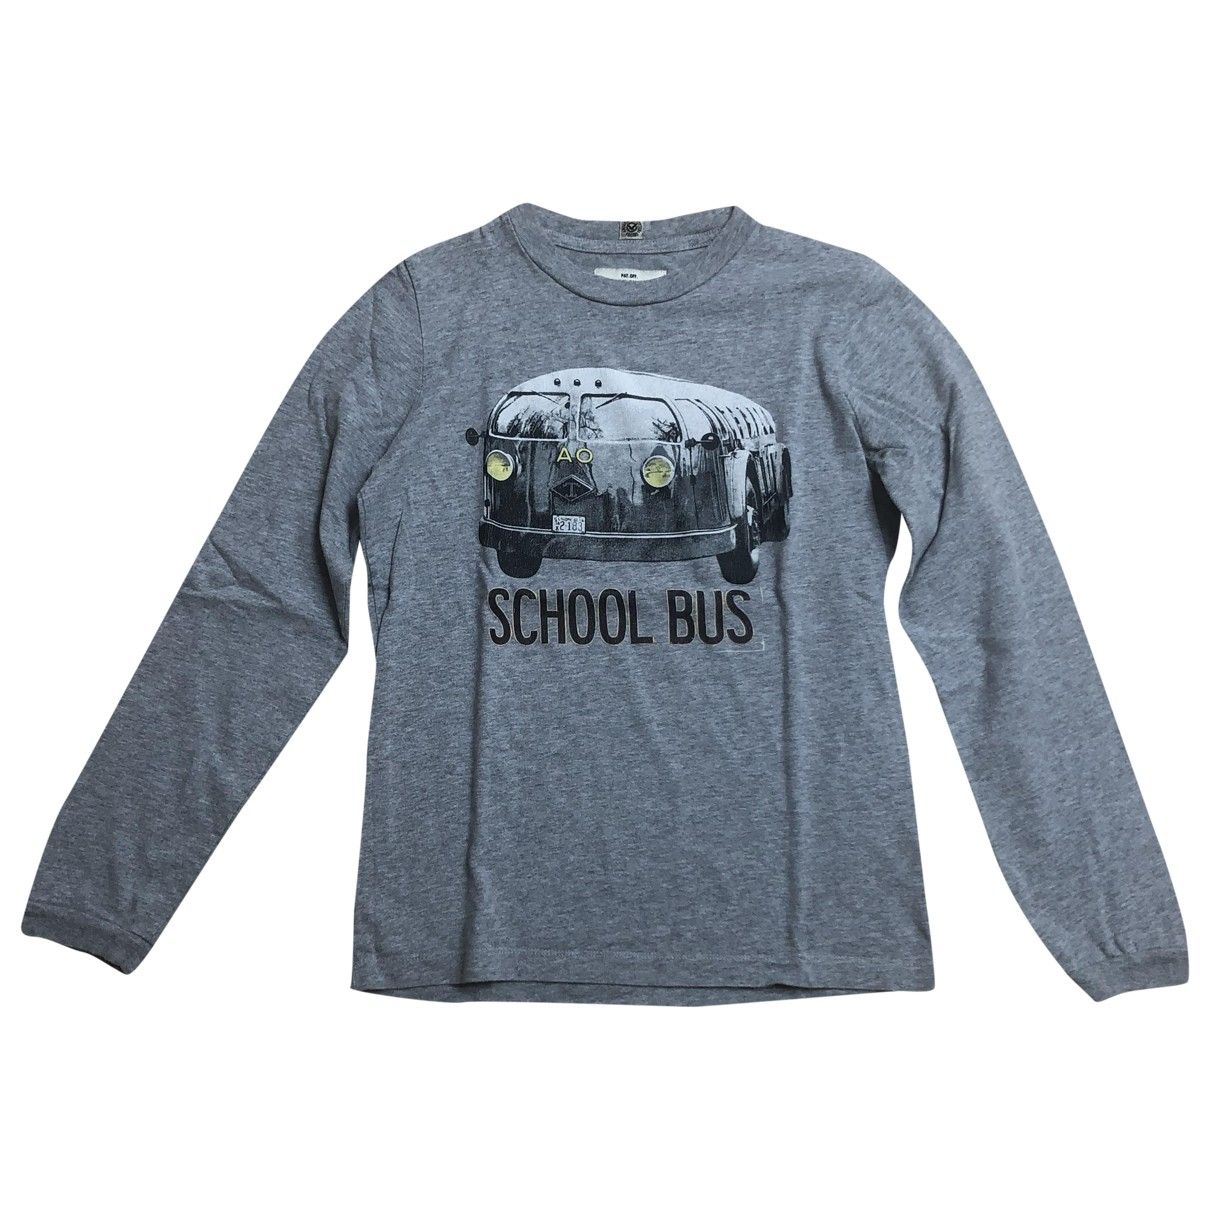 American Outfitters \N Grey Cotton  top for Kids 14 years - S FR